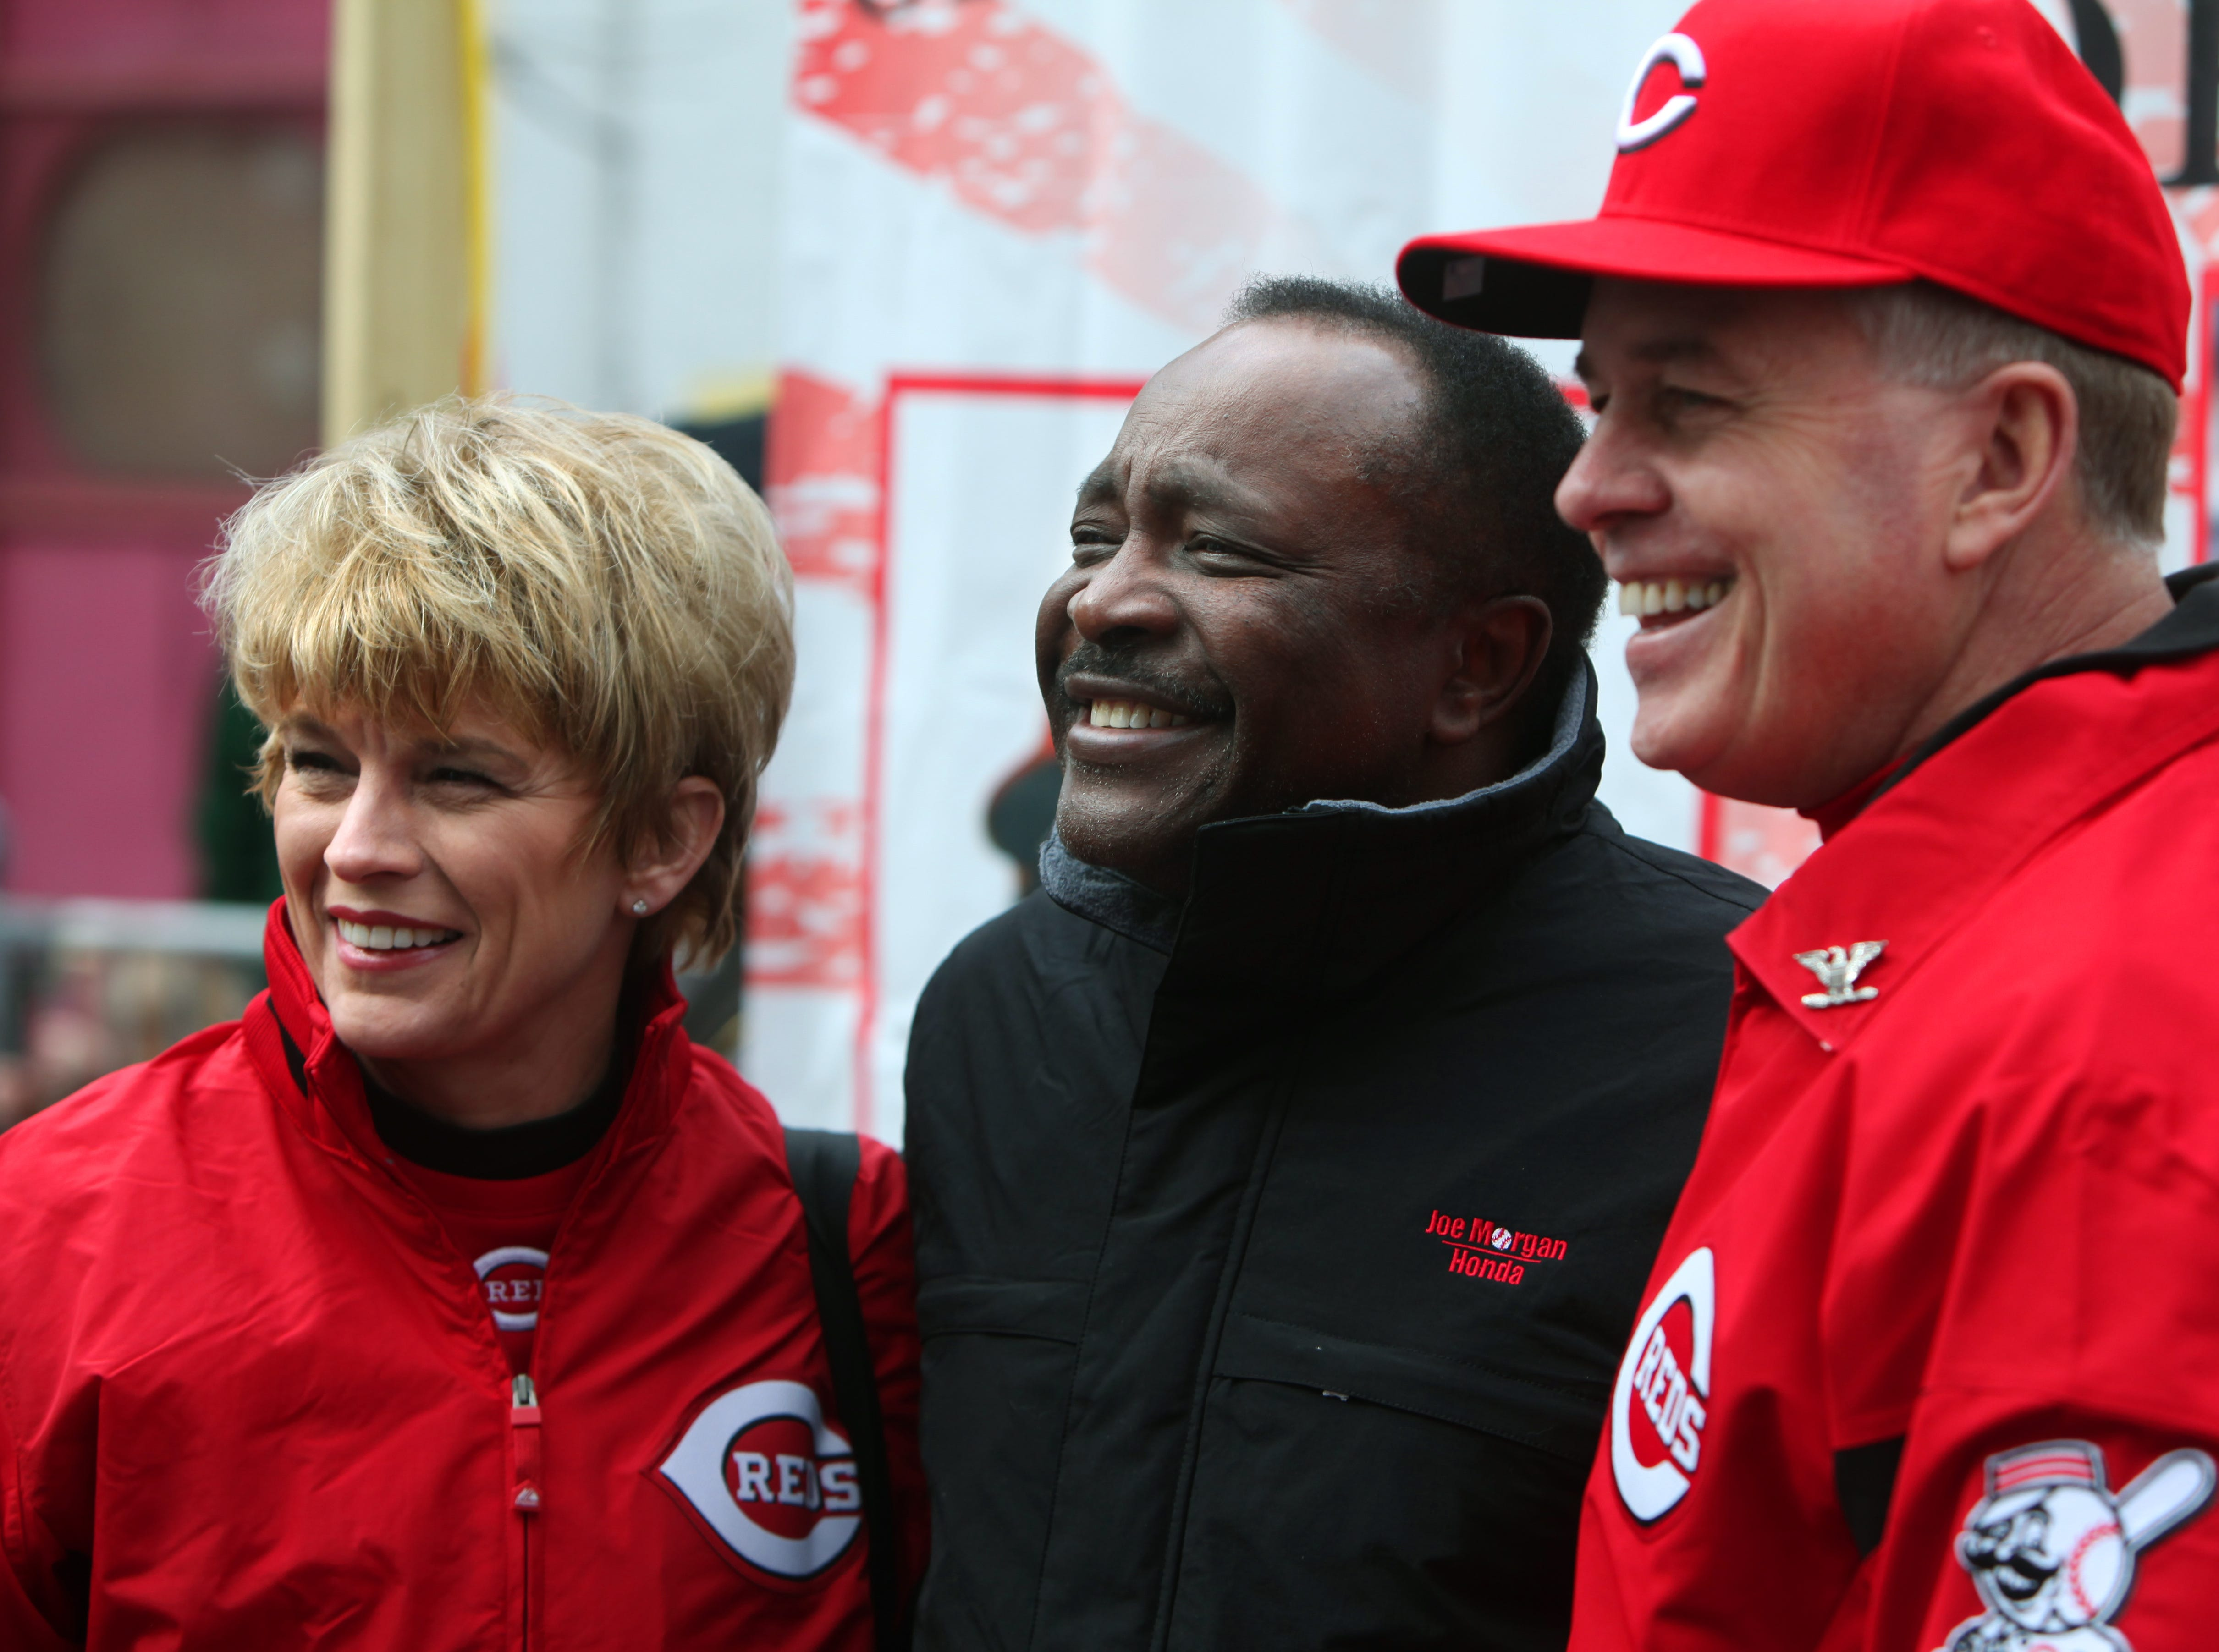 March 31, 2011: Cincinnati Reds Hall of Famer Joe Morgan, center, is photographed with Cathy Streicher, left, and her husband, the former Police Chief Tom Streicher. Morgan is the grand marshal of the 92nd Findlay Market Parade and Tom Streicher threw the ceremonial first pitch.